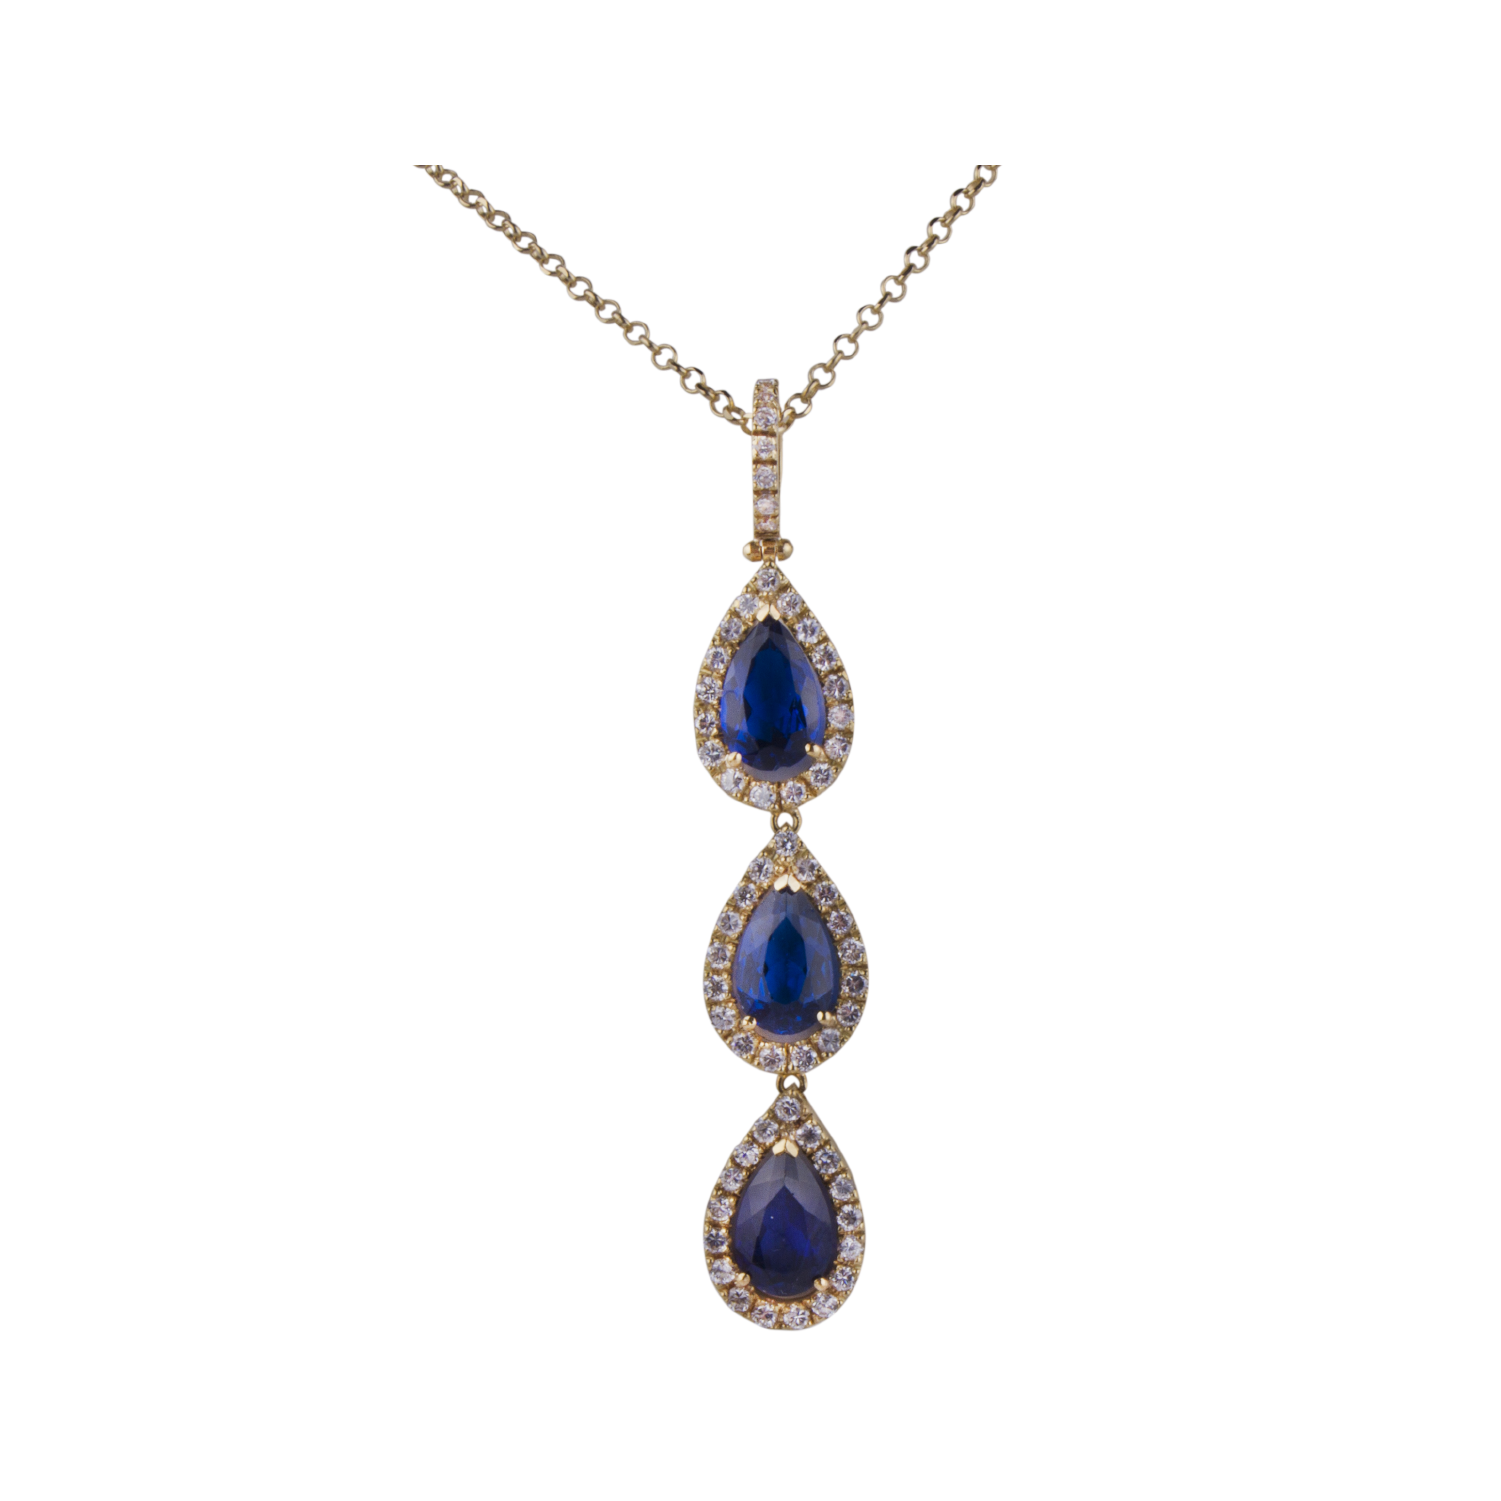 COLLIER 30032018-1